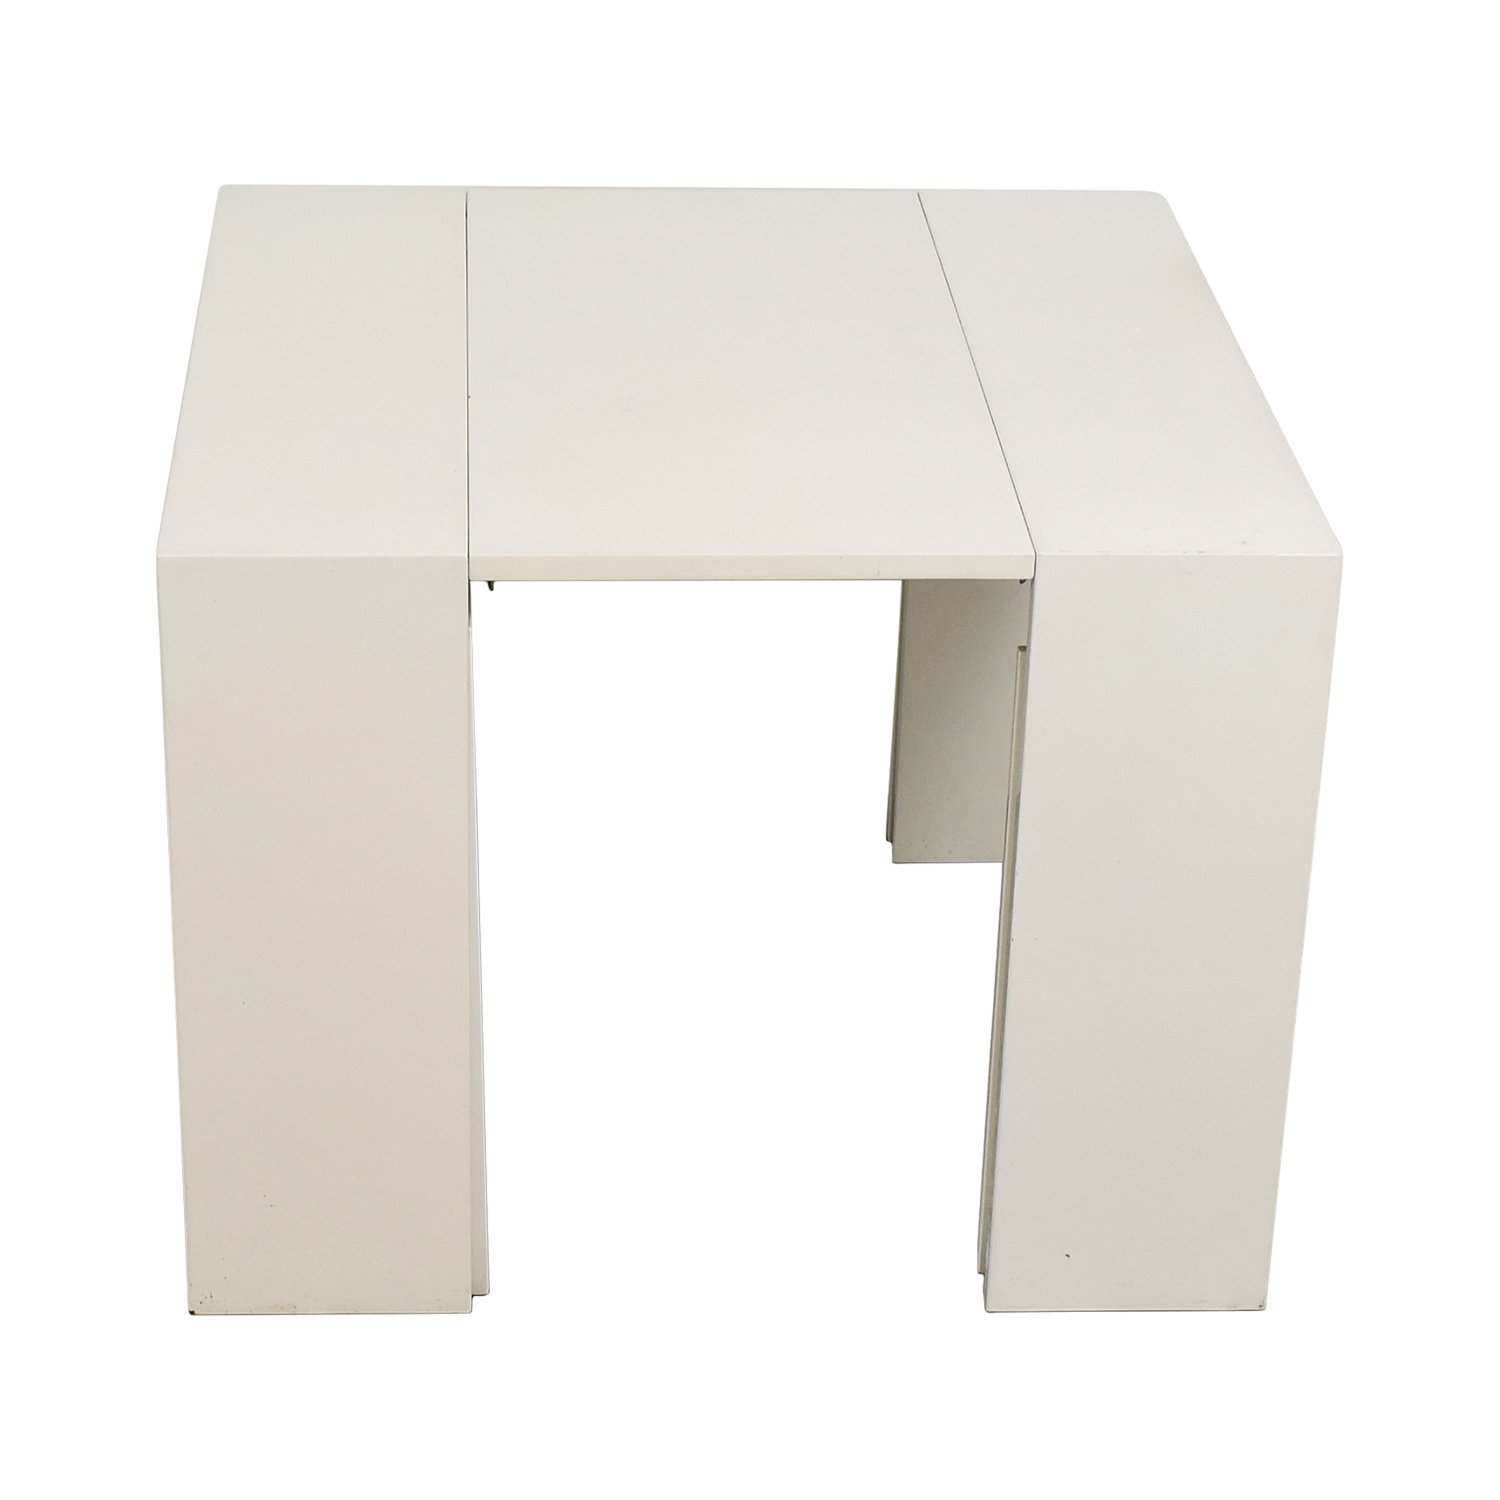 Modani Extendable White and Creme Table / Tables